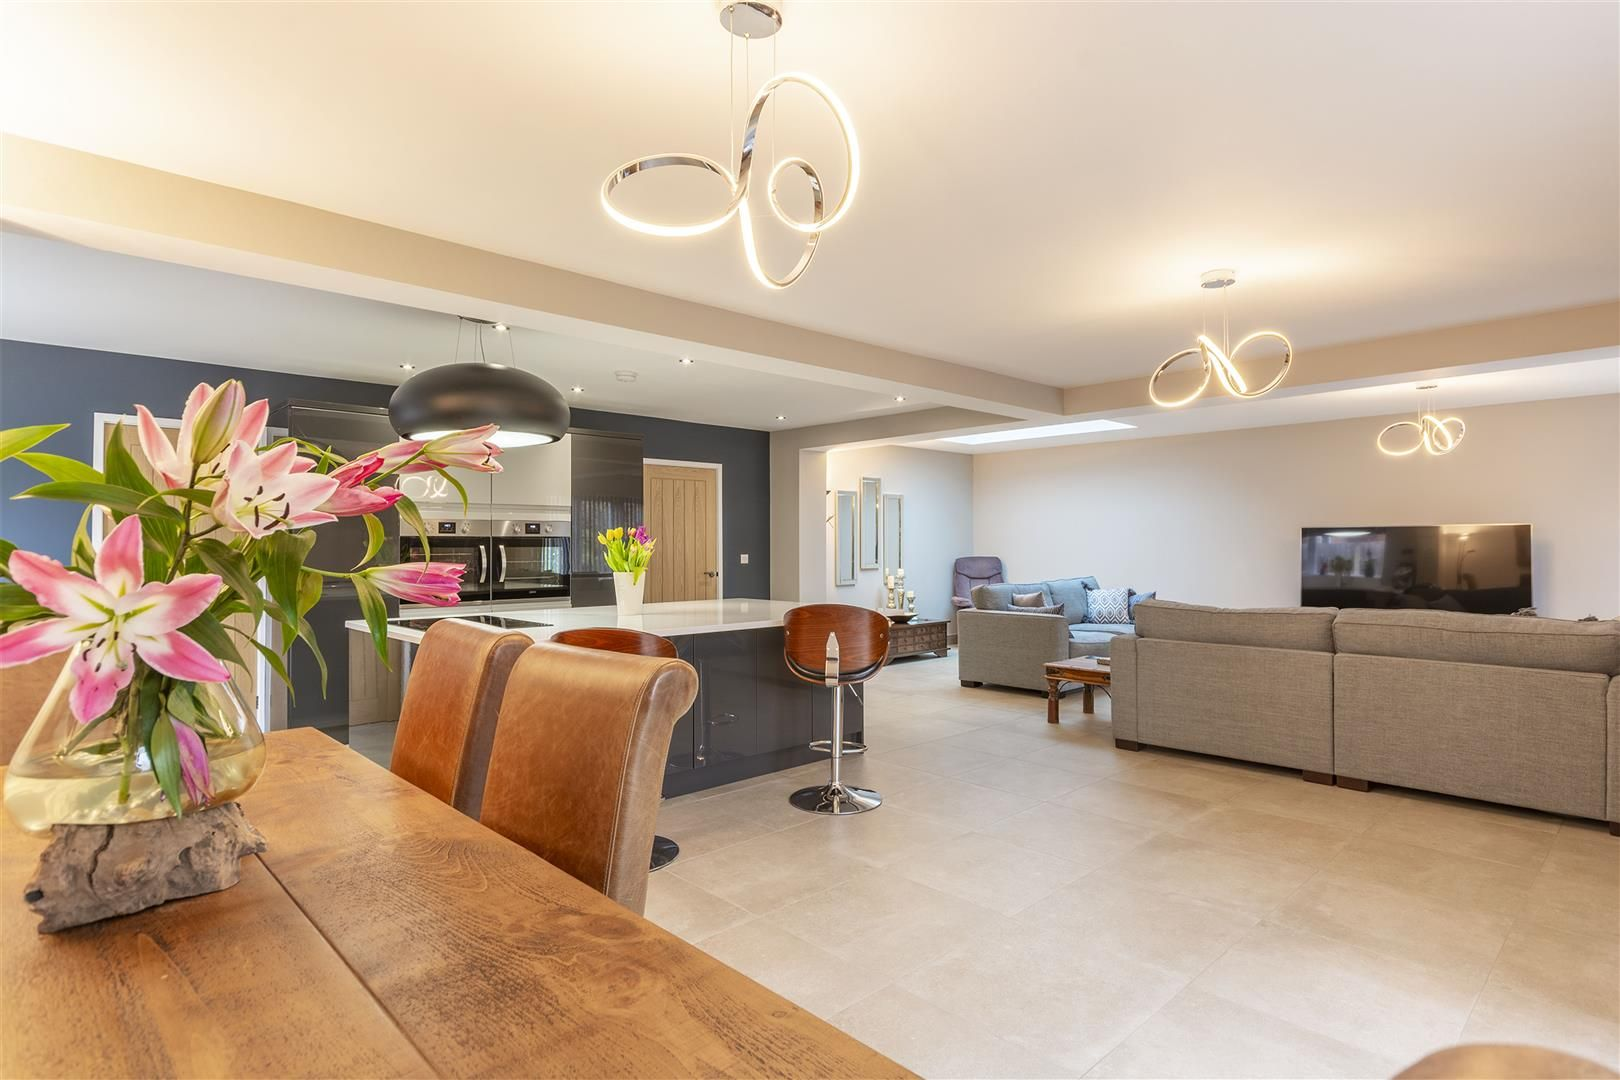 Property photo 1 of 24. Open Plan Living/Dining Kitchen